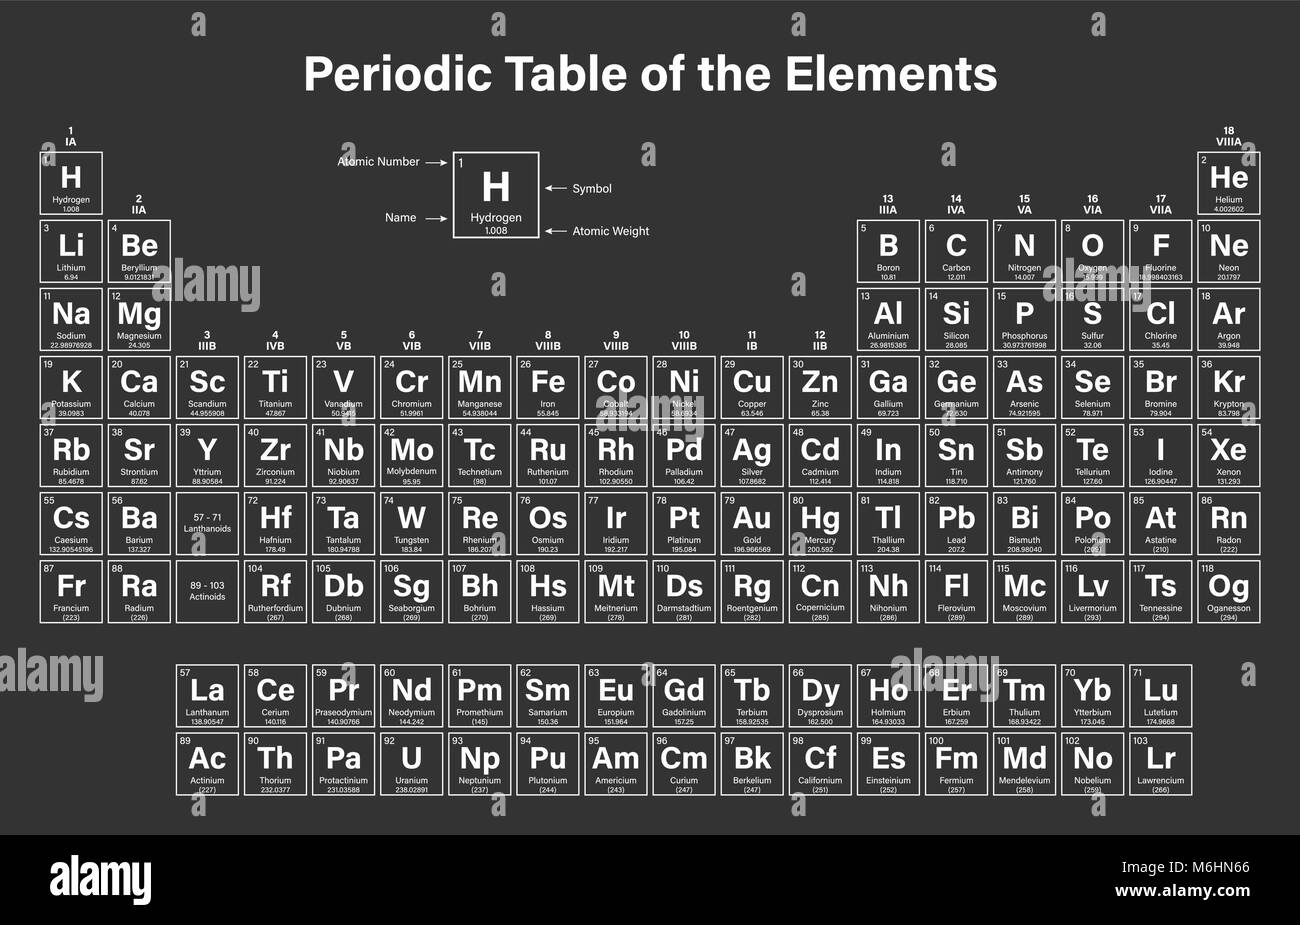 periodic table of the elements vector illustration shows atomic number symbol name and atomic weight